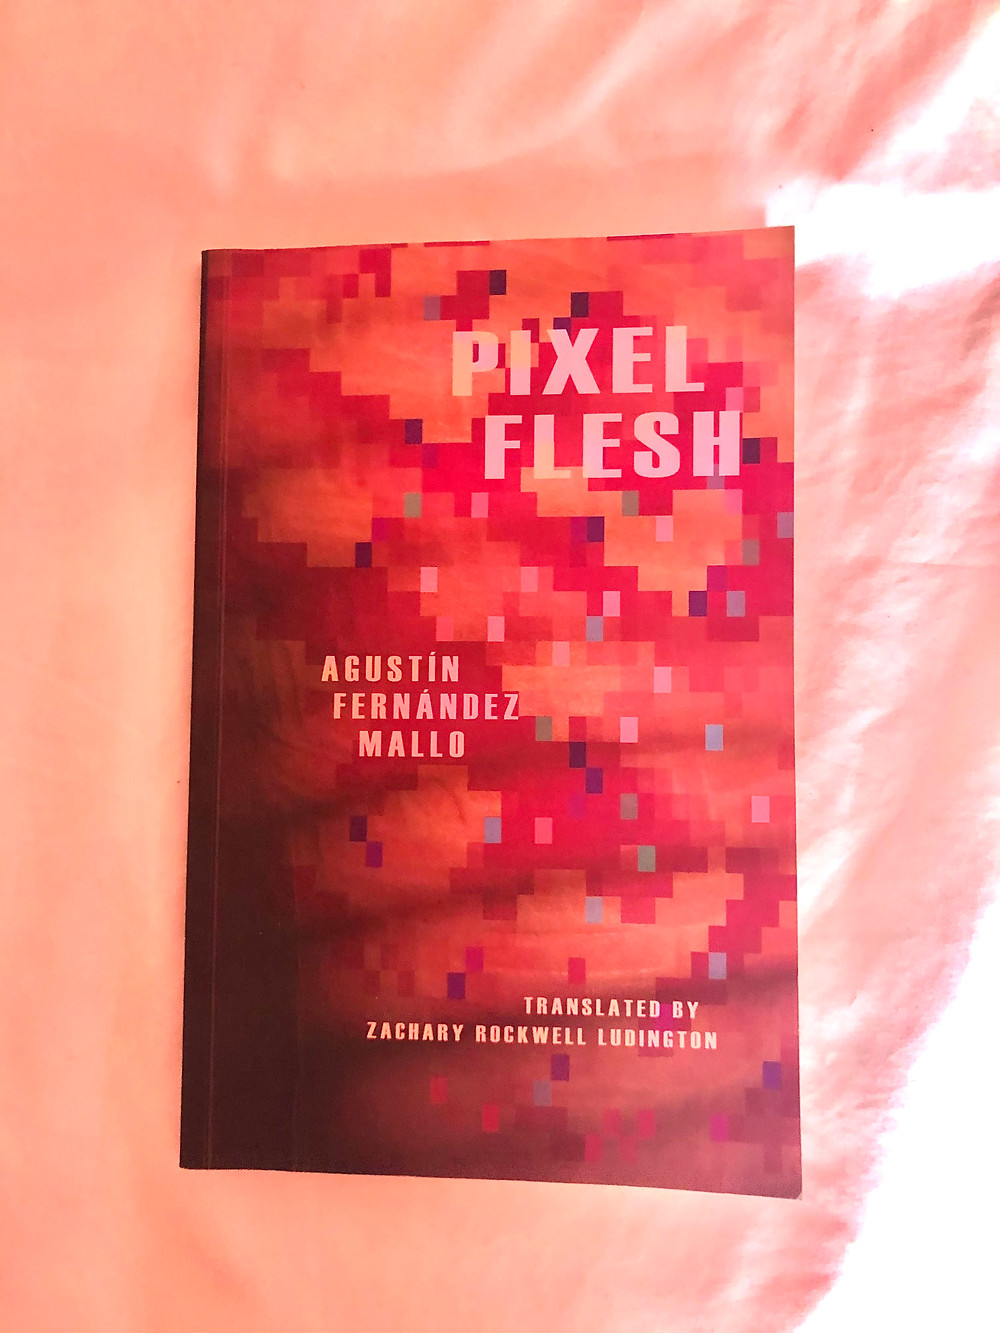 A copy of Pixel Flesh book lies upon pale salmon pink silky material. The cover is made up of orange and red pixels fading to dark in bottom left hand corner, and light comes in from the top right